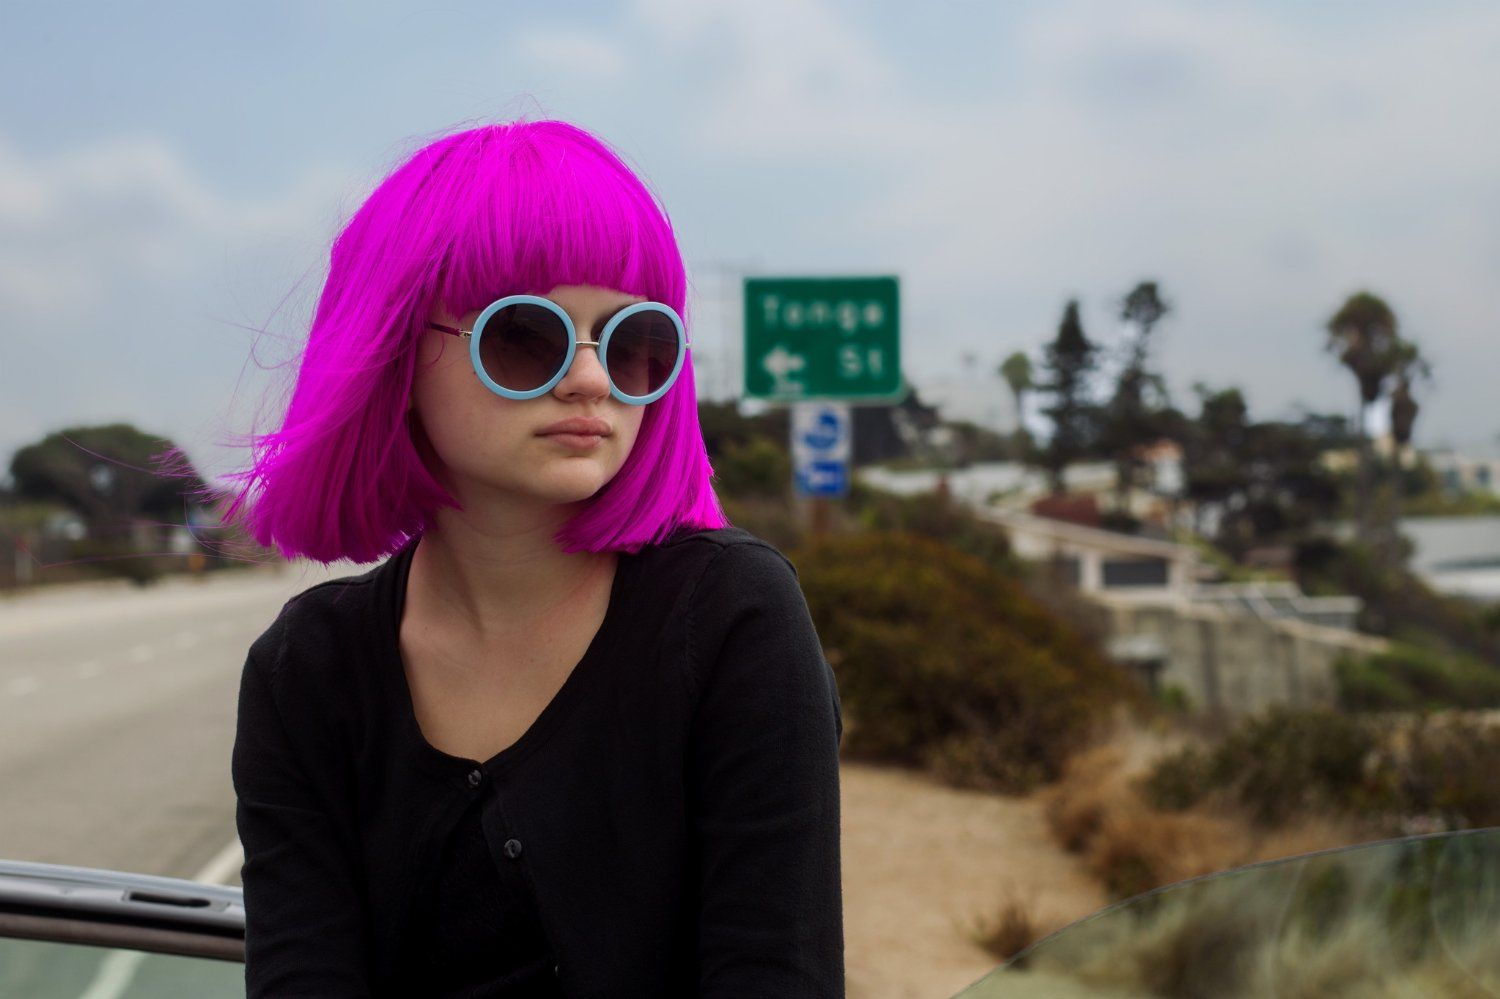 Joey King Joey king, Shave her head, Pink wig